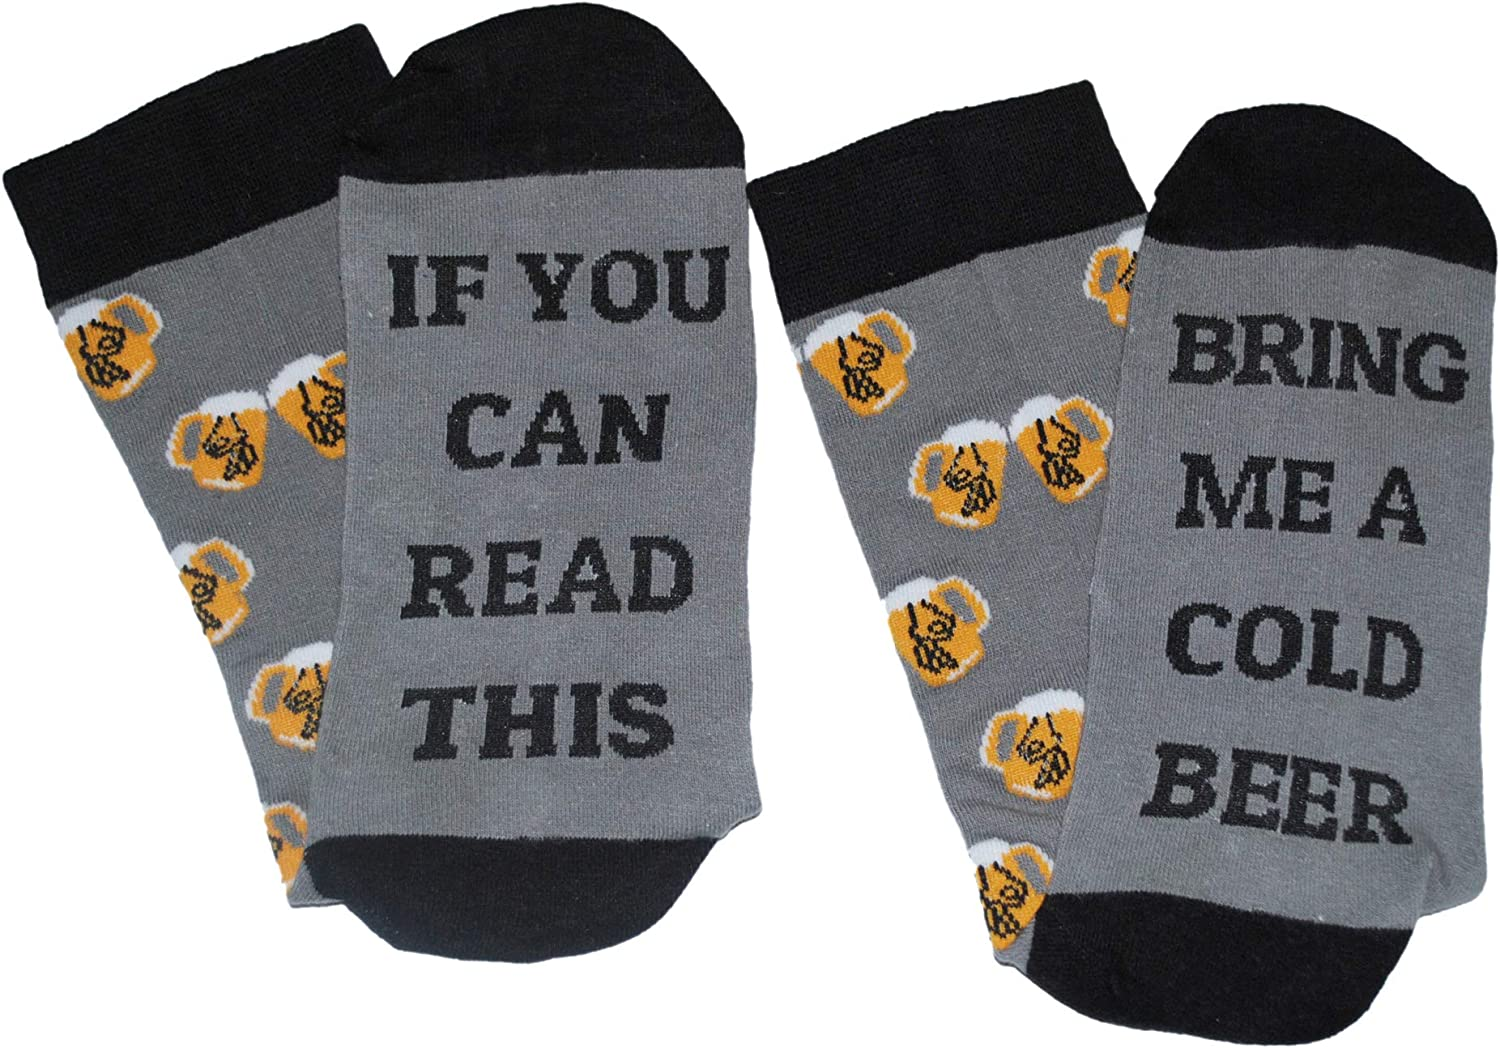 Tacos Wine Beer Socks If You Can Read This Happy Socks Novelty Funny Gift For Men Women